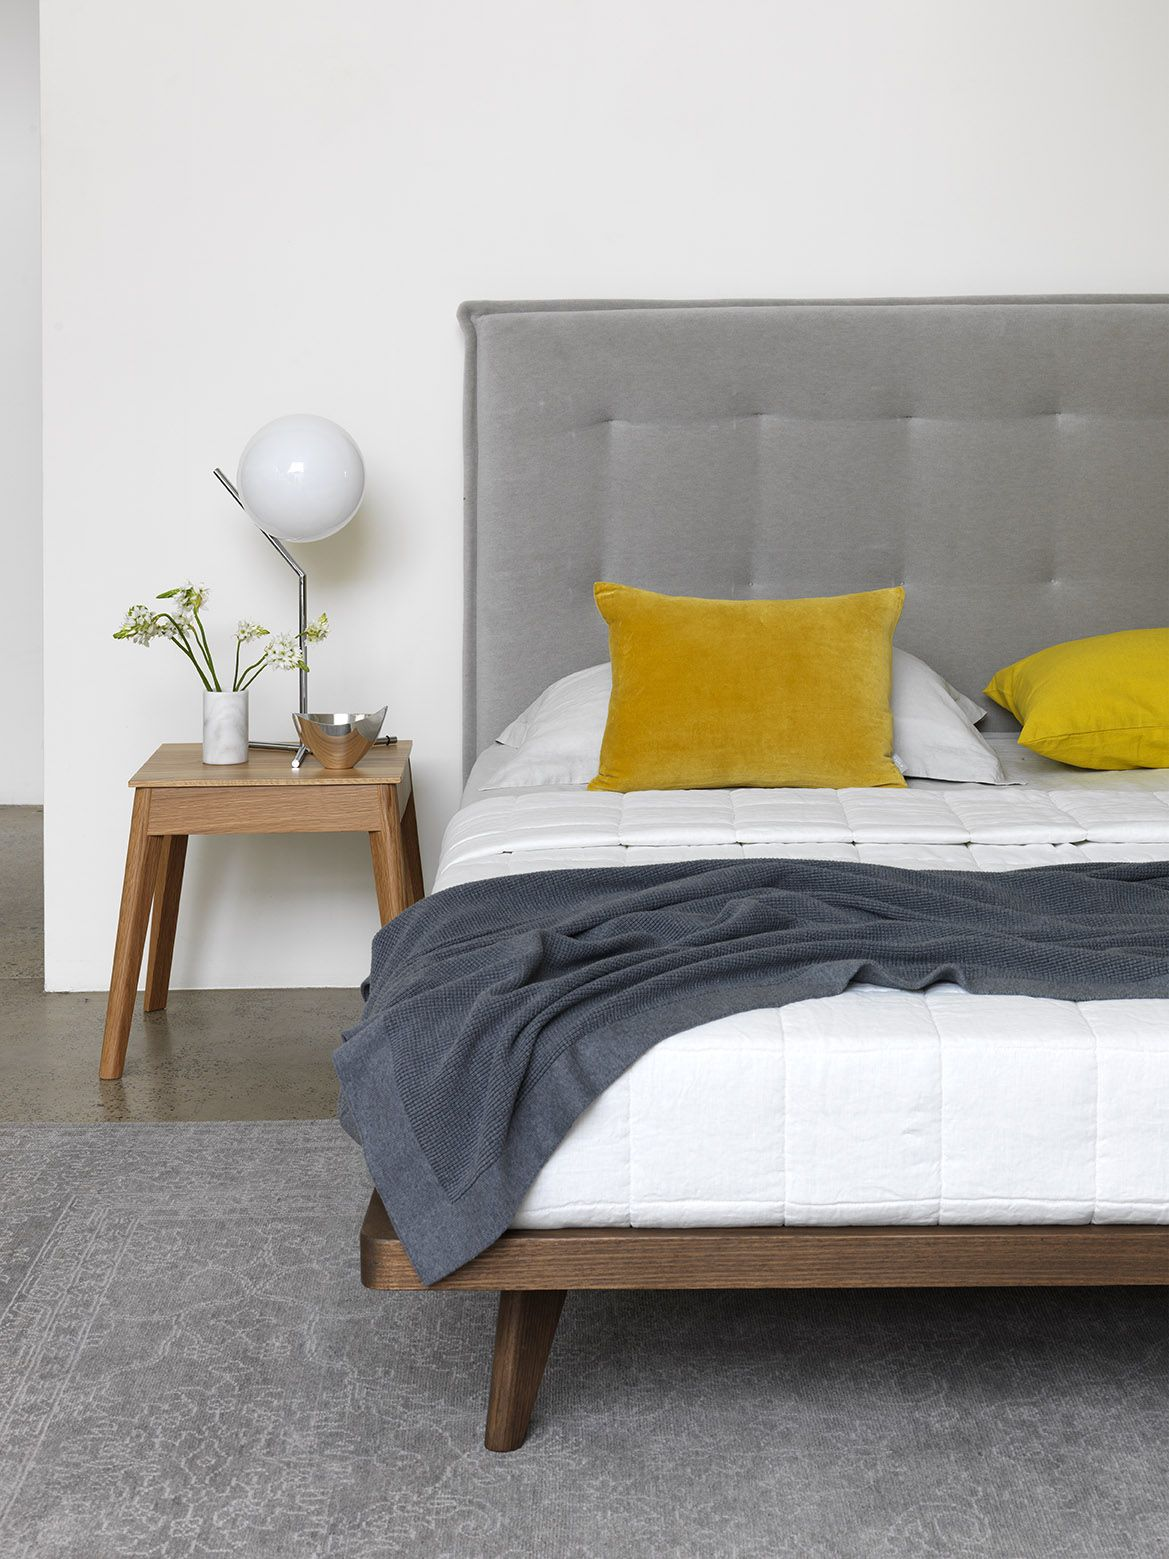 Lacquered made in spain wood modern platform bed with tiles milwaukee - The Arthur G Austin Bed And Carson Side Table Upholstered Bedhead Grey Velvet